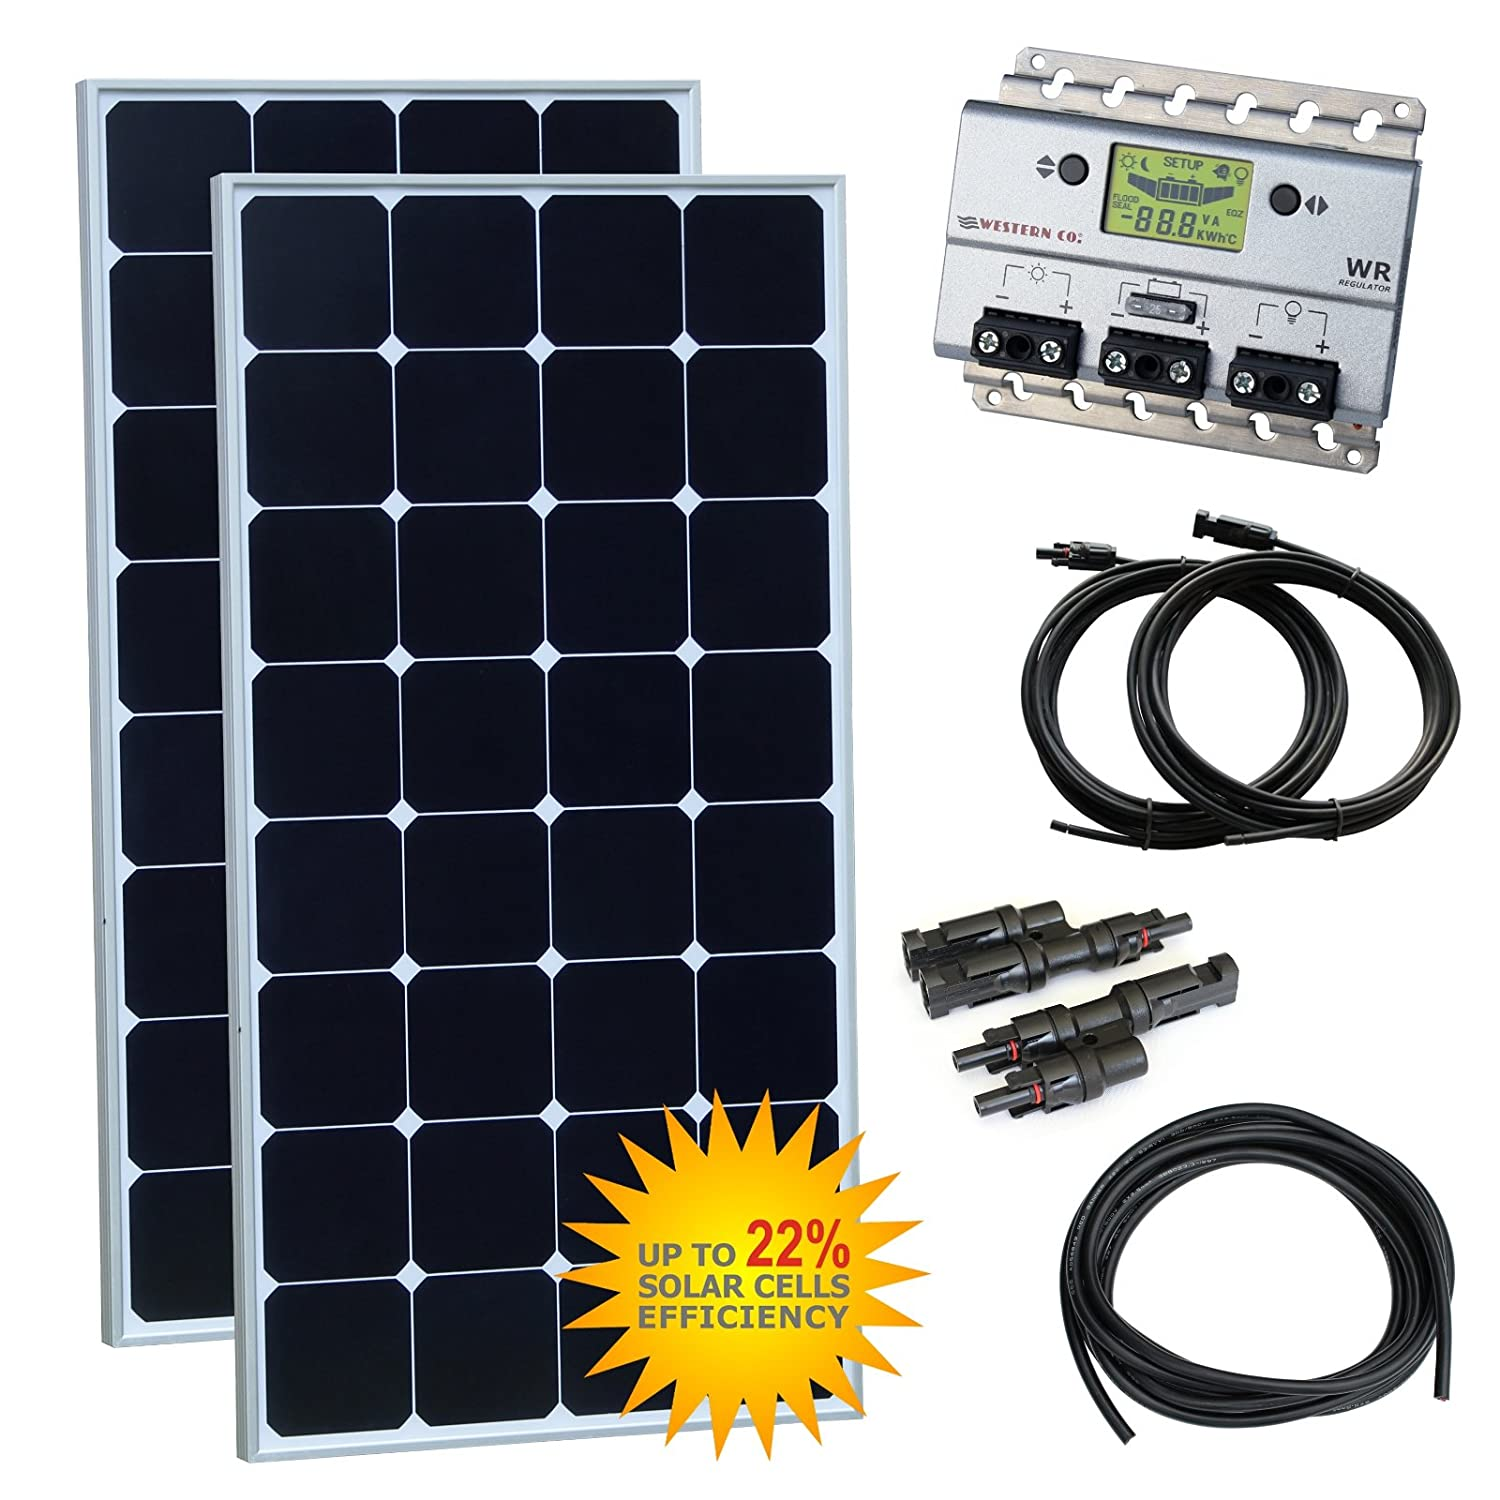 with 20A charge controller and 5m cable 250W 12V Photonic Universe dual battery solar charging kit made of German solar cells